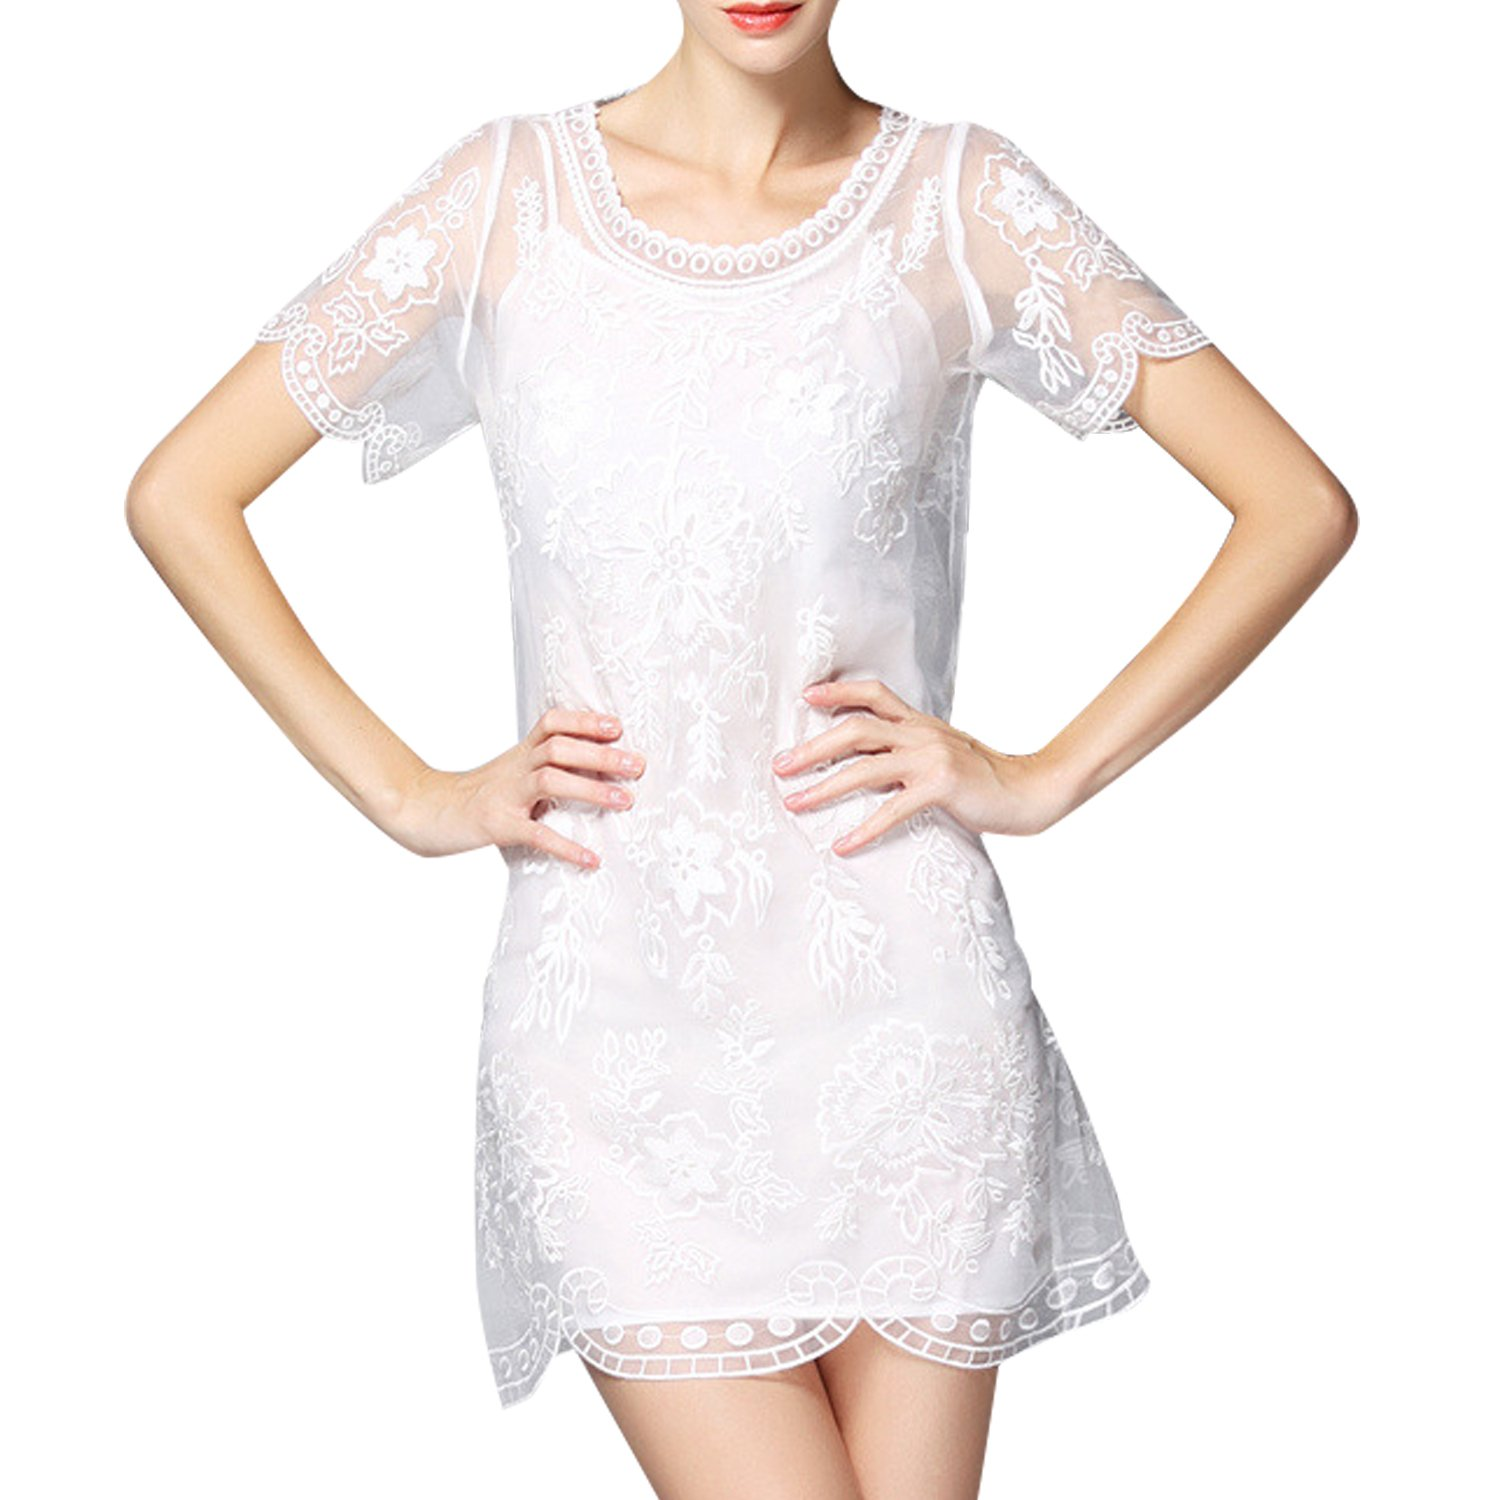 mlovew Womens See-Through Lace Up Short Dress